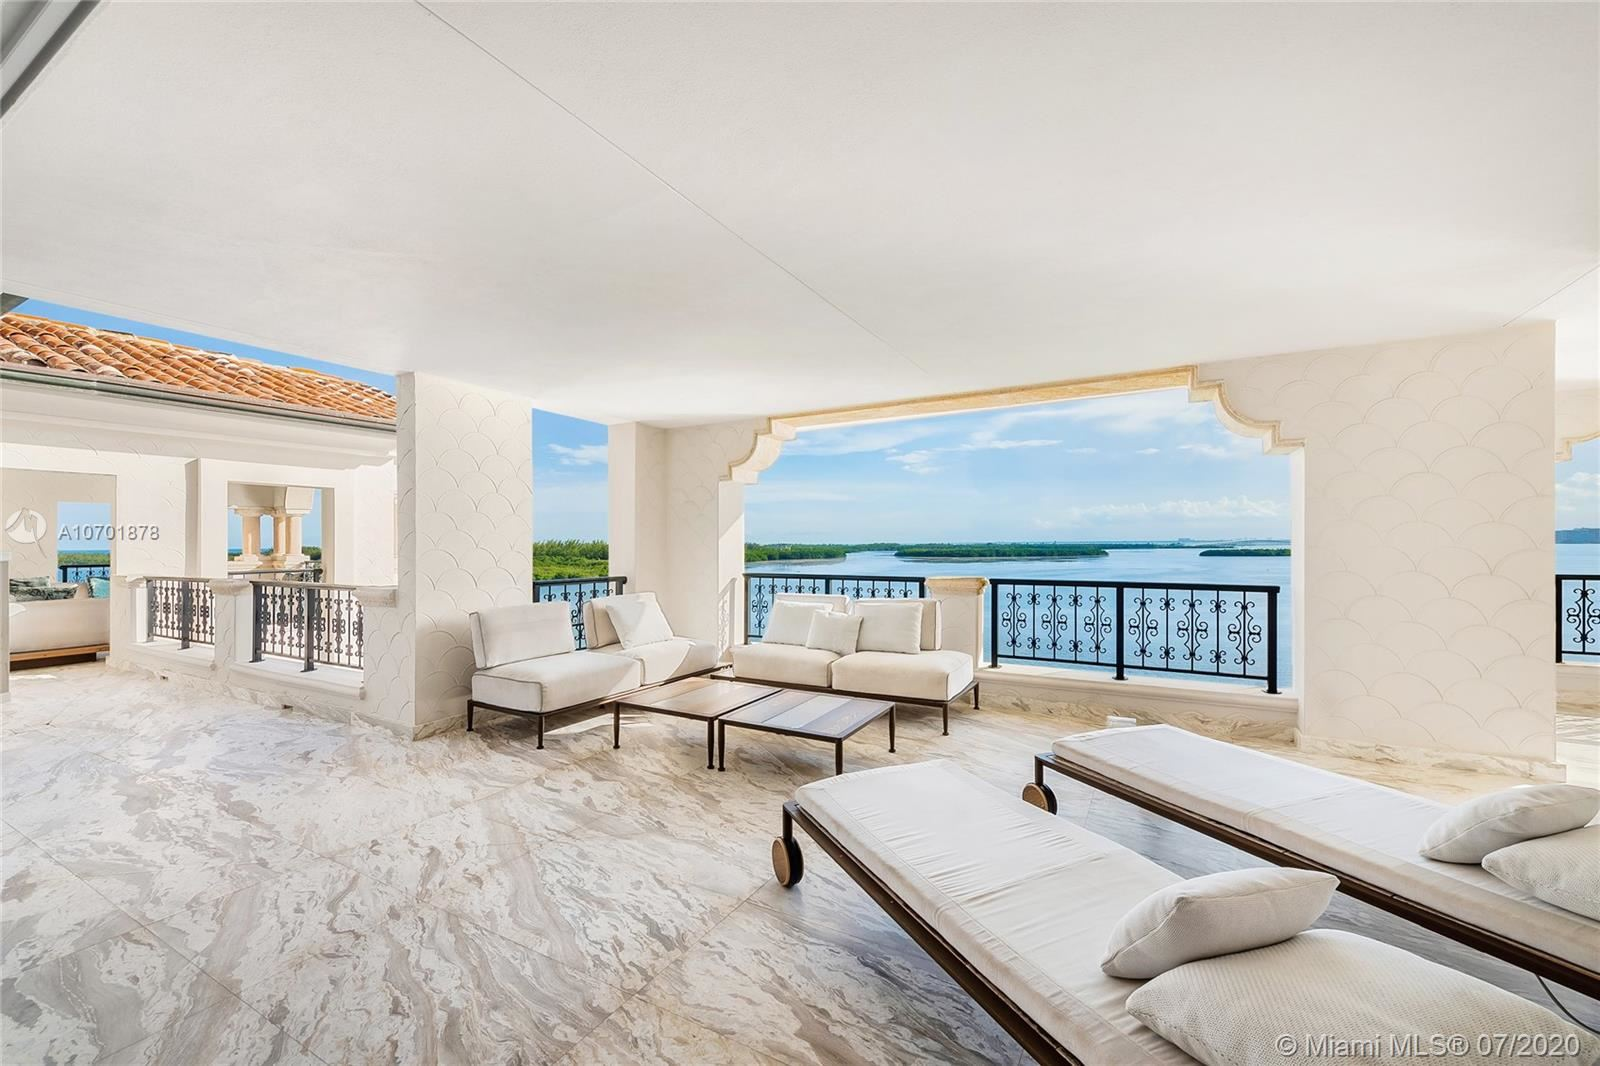 Photo 12 of Listing MLS a10701878 in 5292 Fisher Island Dr #5292 Miami FL 33109